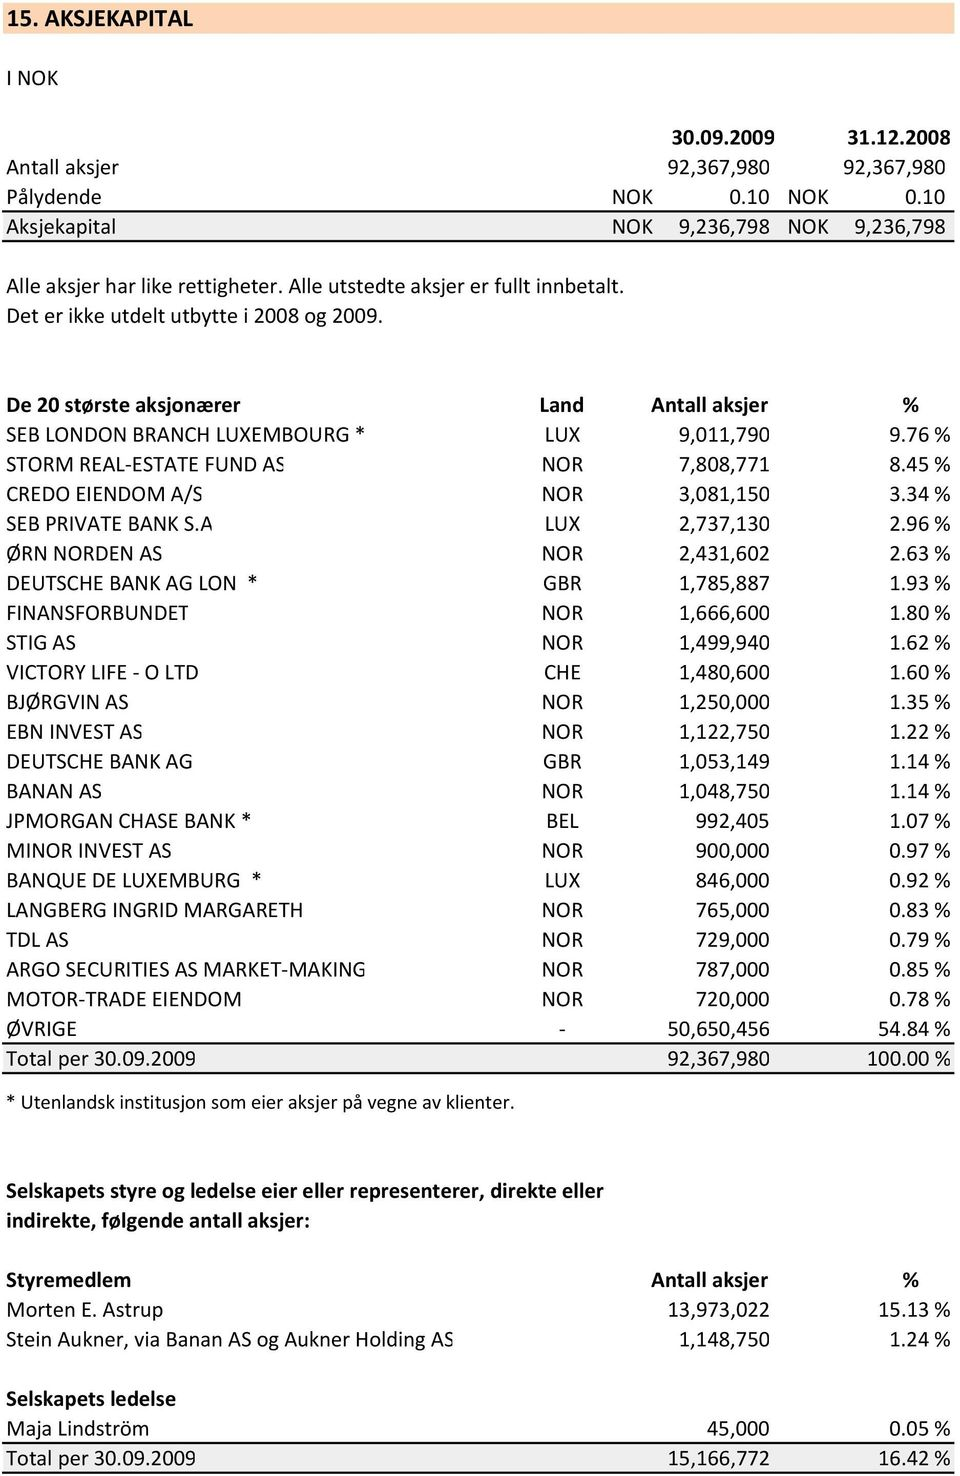 76 % STORM REAL ESTATE FUND AS NOR 7,808,771 8.45 % CREDO EIENDOM A/S NOR 3,081,150 3.34 % SEB PRIVATE BANK S.A LUX 2,737,130 2.96 % ØRN NORDEN AS NOR 2,431,602 2.